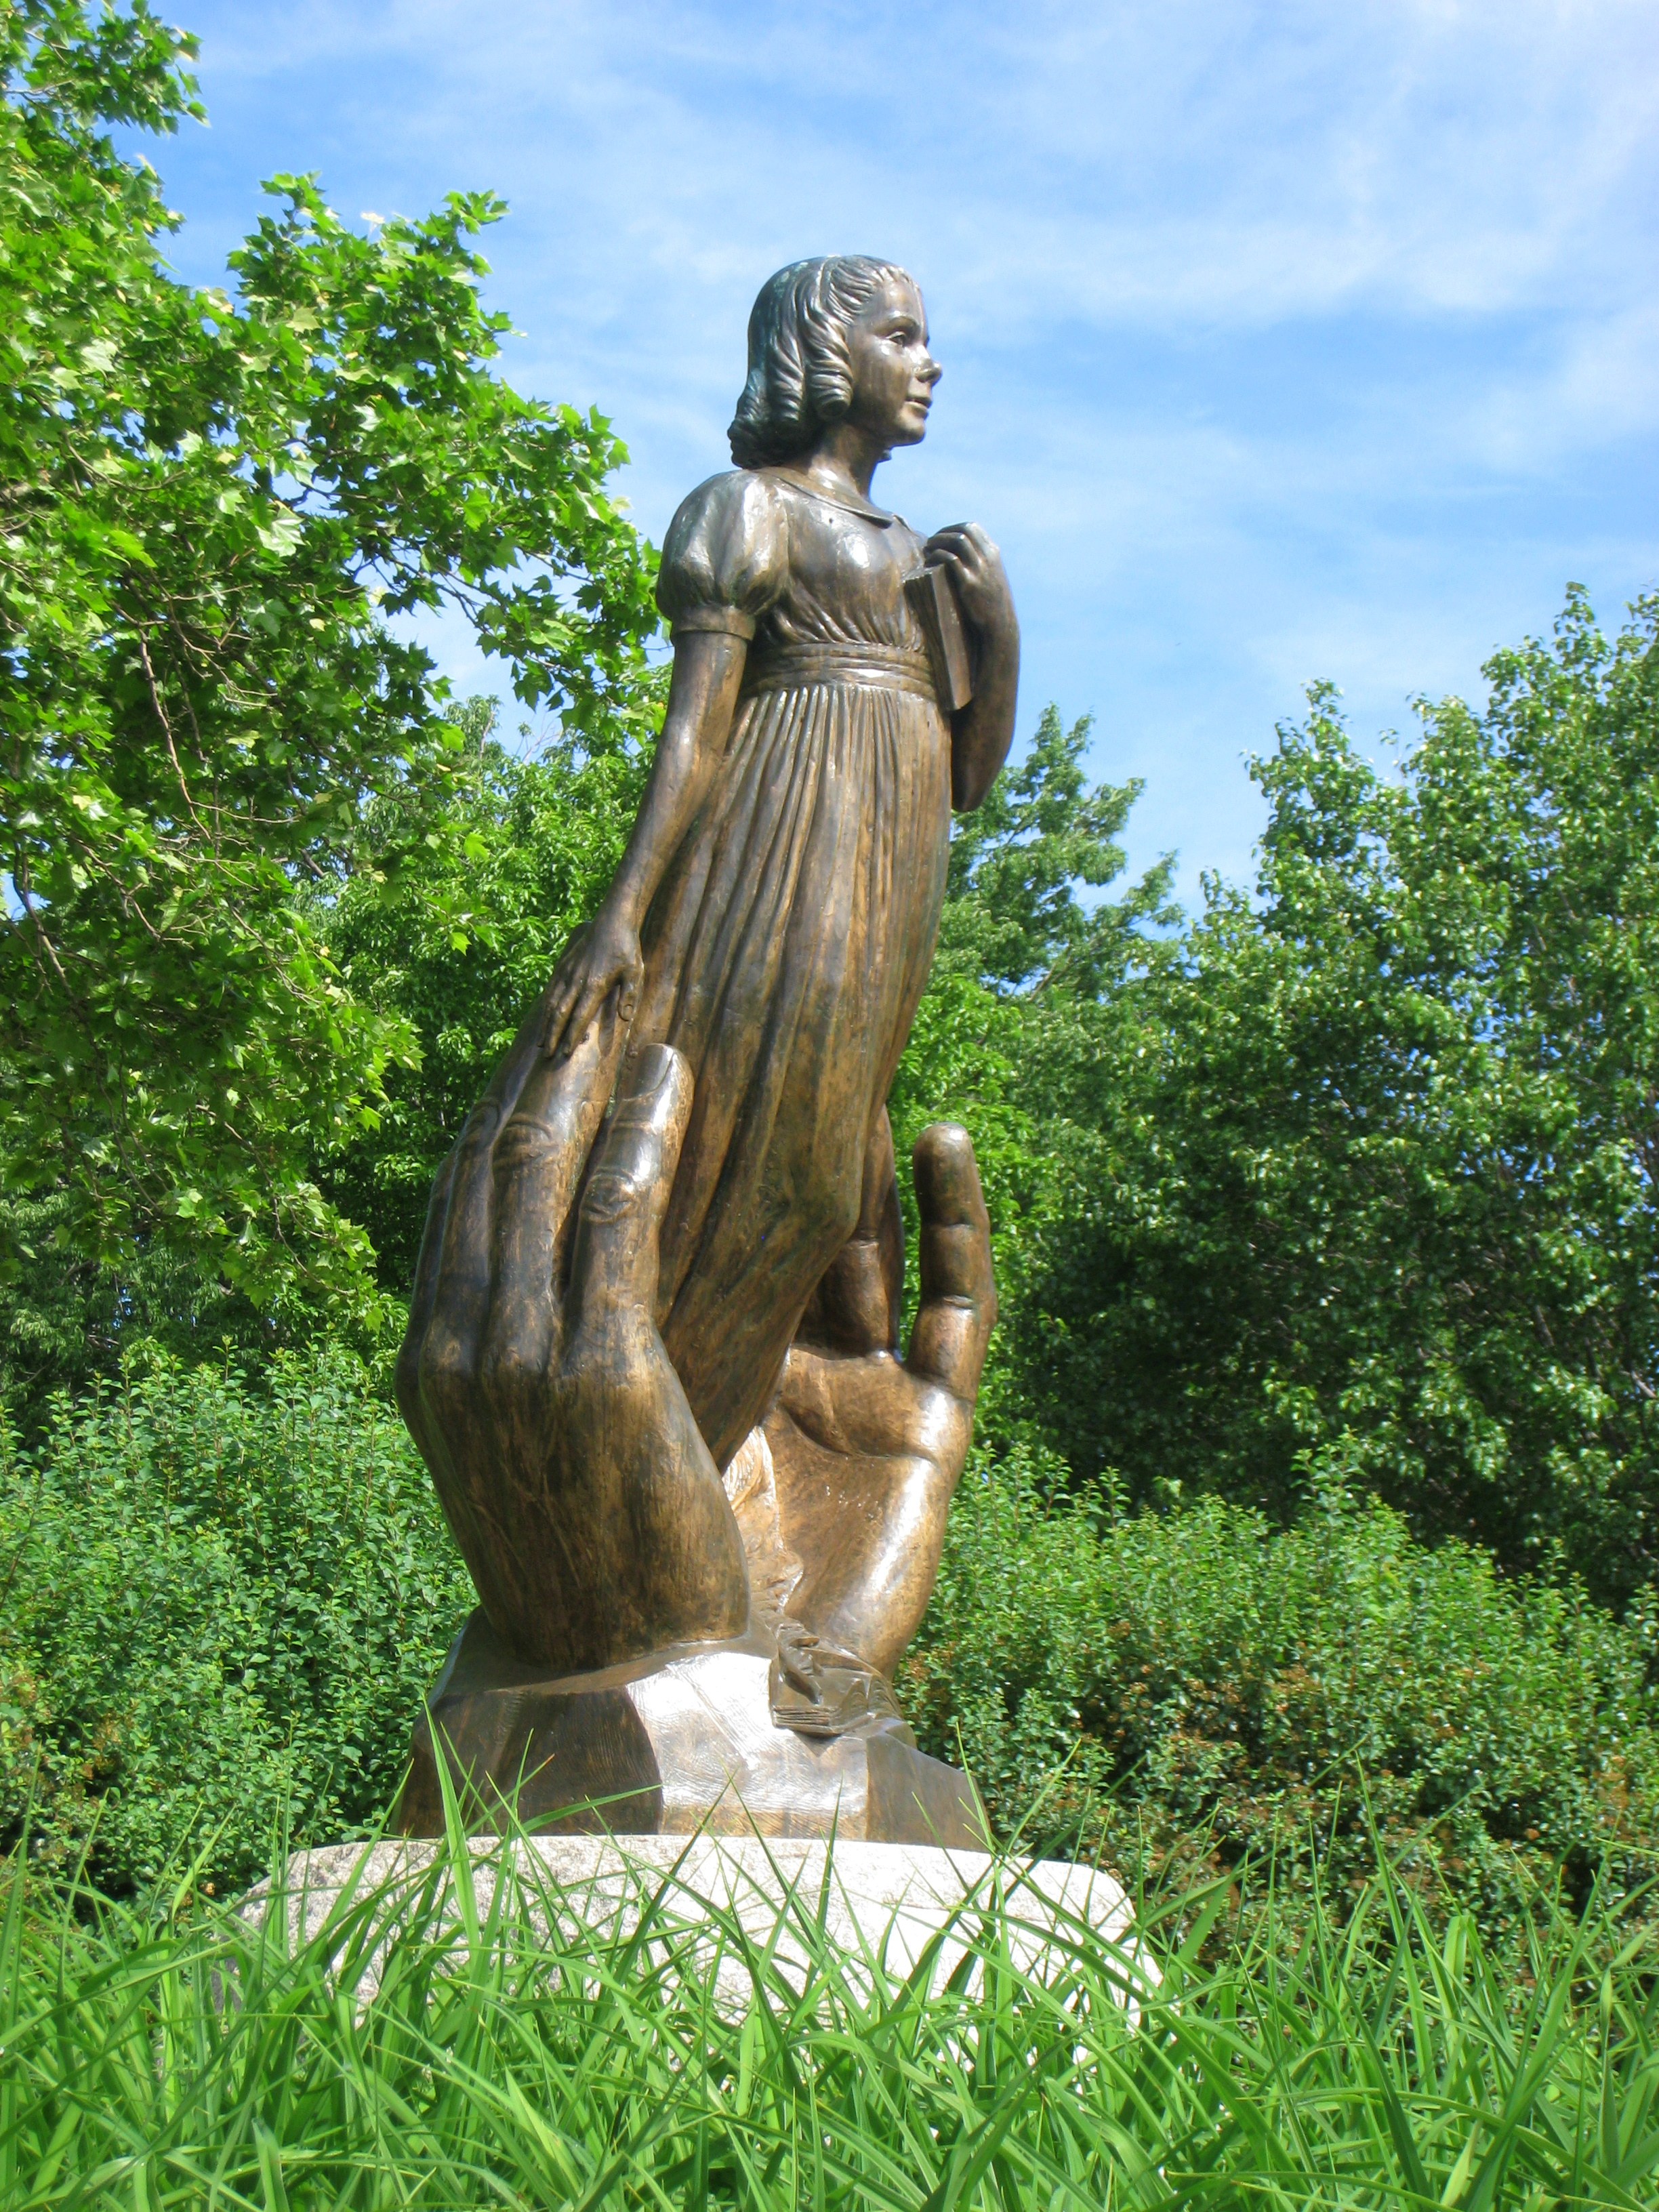 The Hartford At Work >> File:Alice Cogswell statue - Hartford, CT - 1.jpg - Wikipedia